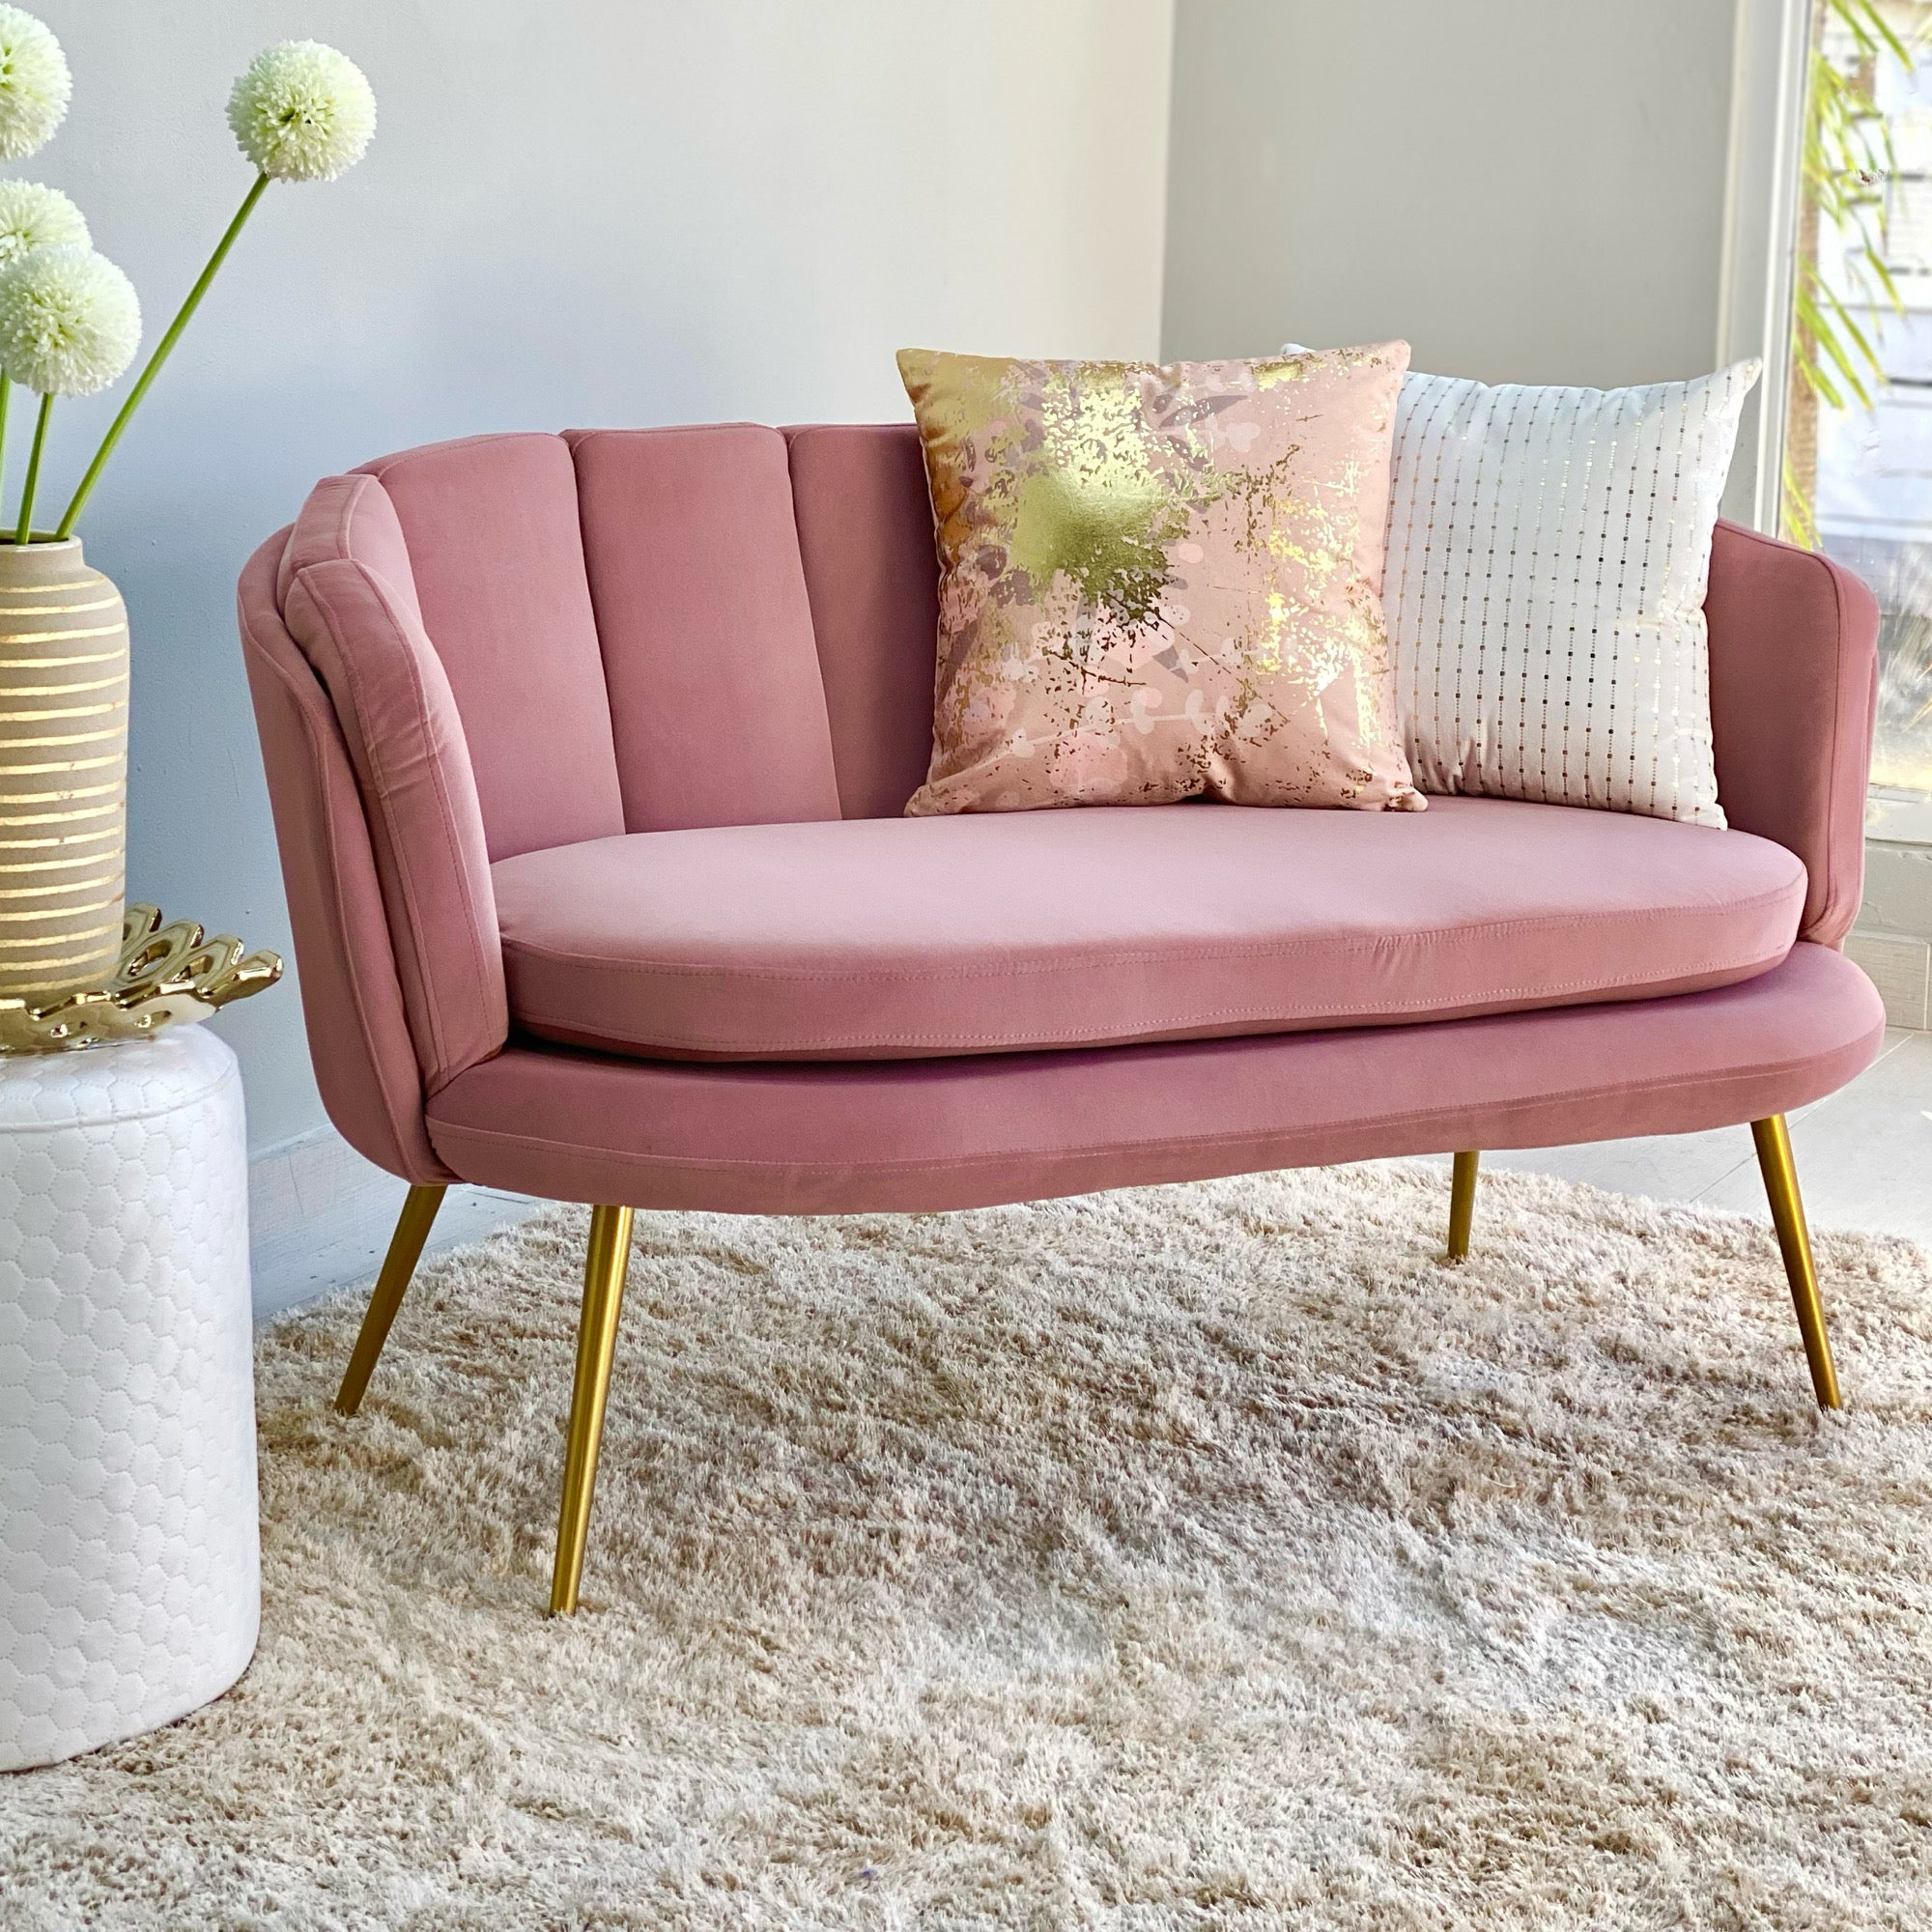 Pink Shell Shaped Loveseat